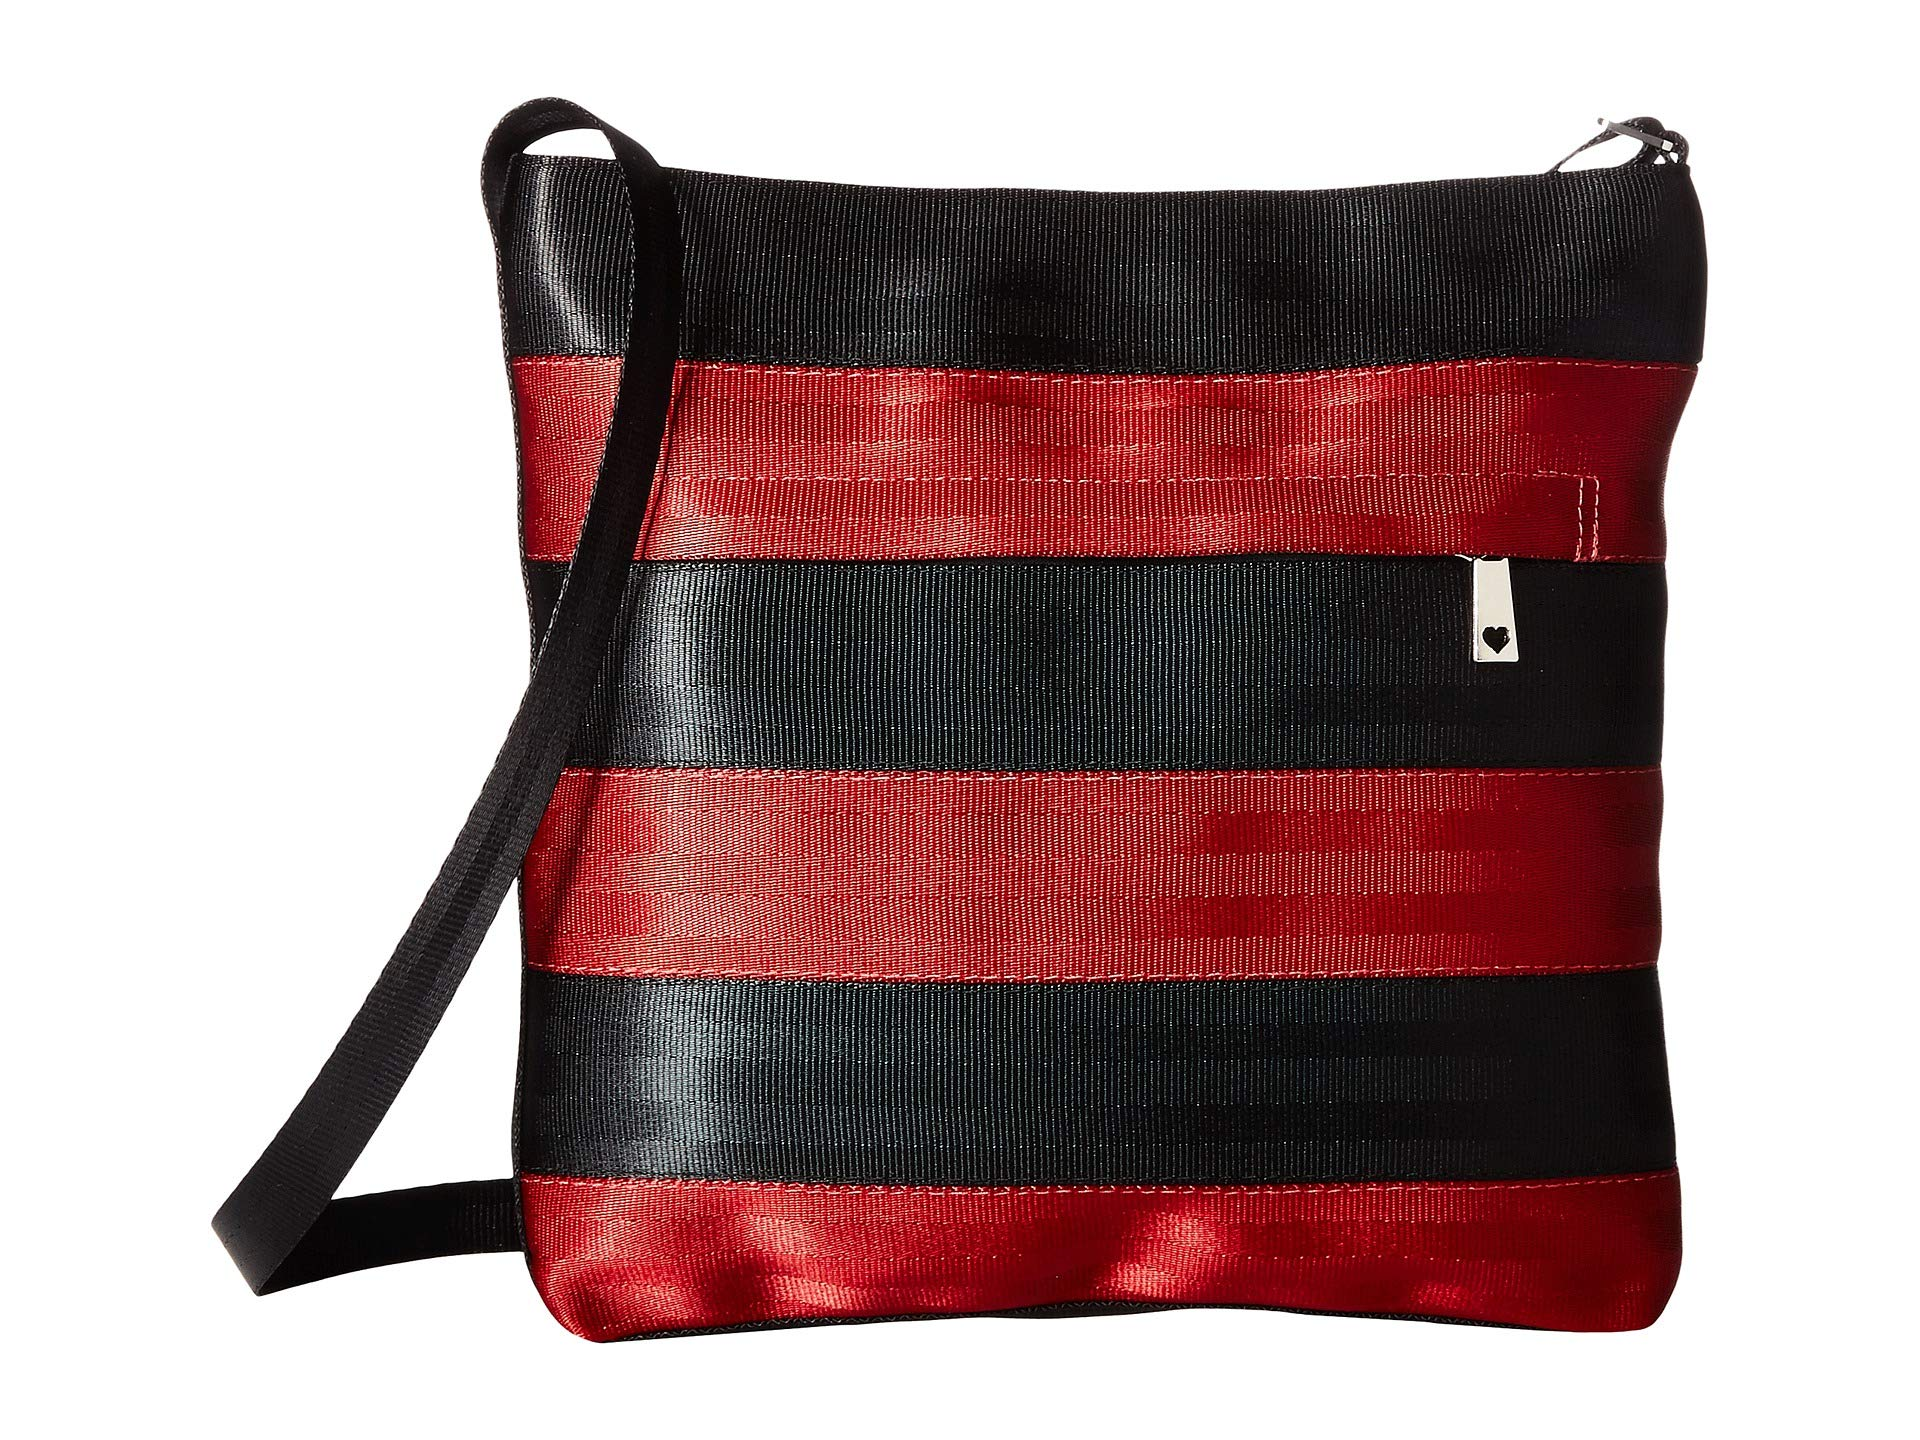 Seatbelt Harveys Bag Streamline Crossbody Dragon Red dzqSwgz